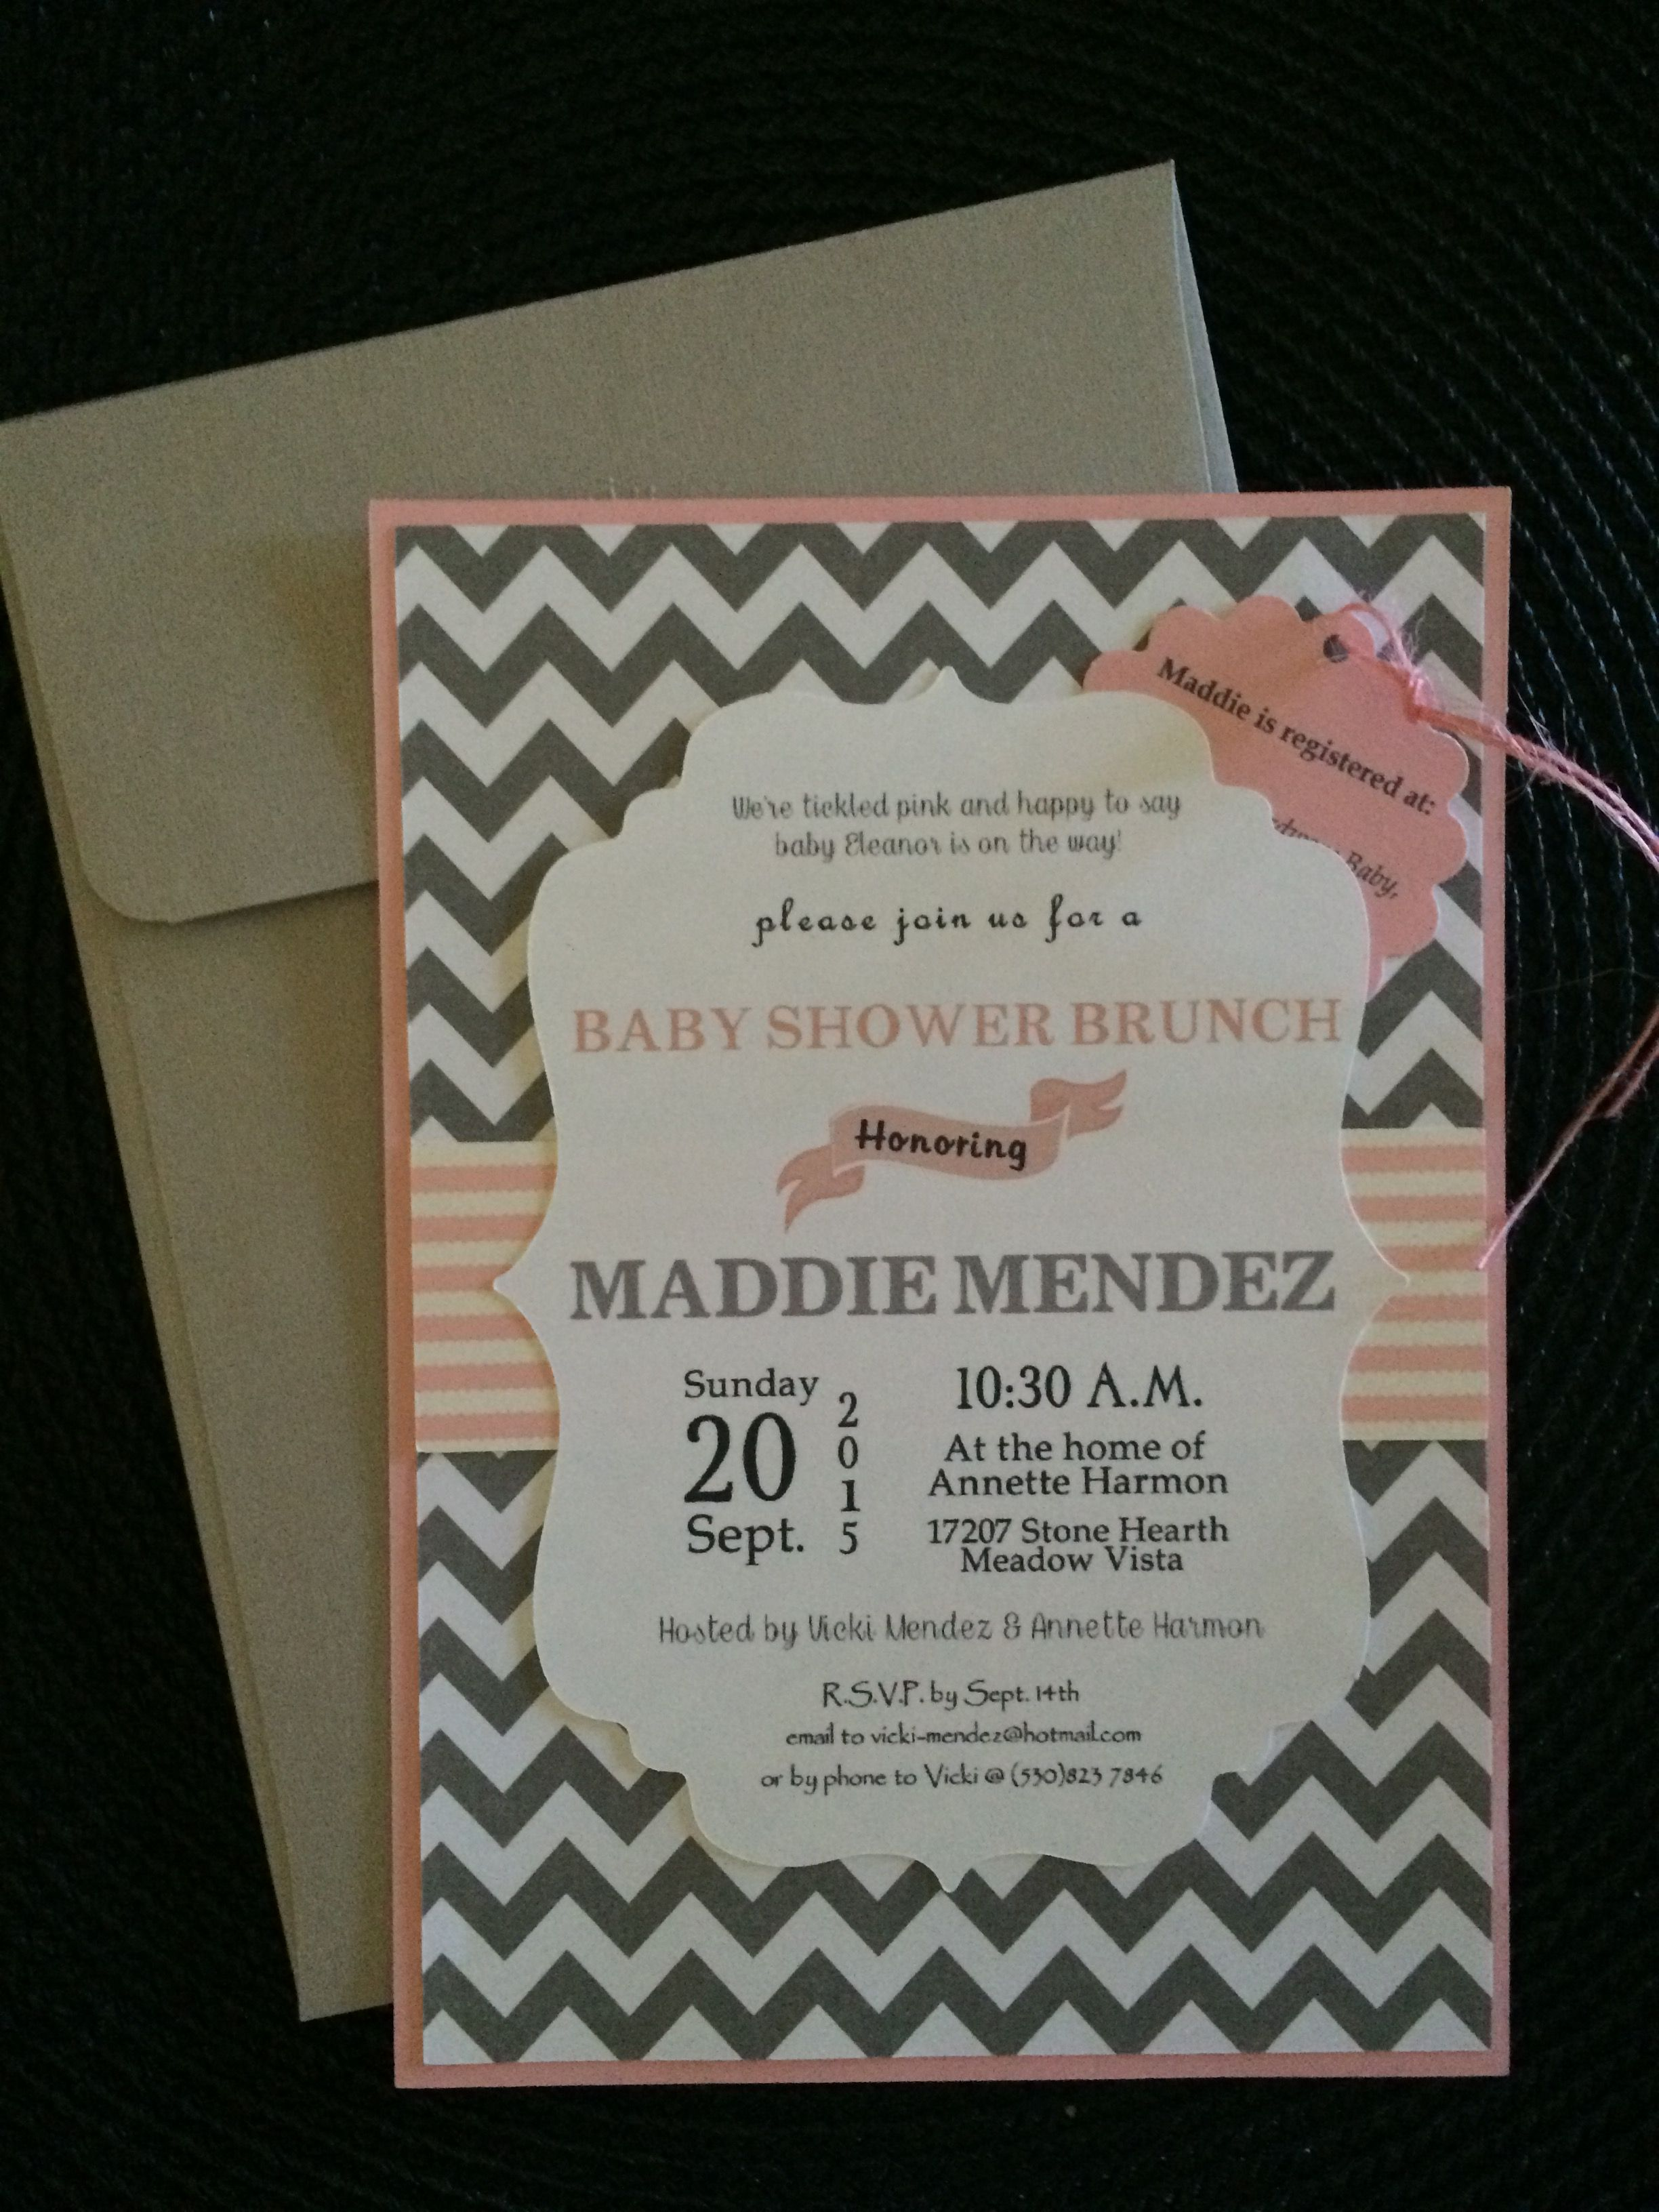 Maddie S Baby Shower Invitations Made With My Cricut Explore Using